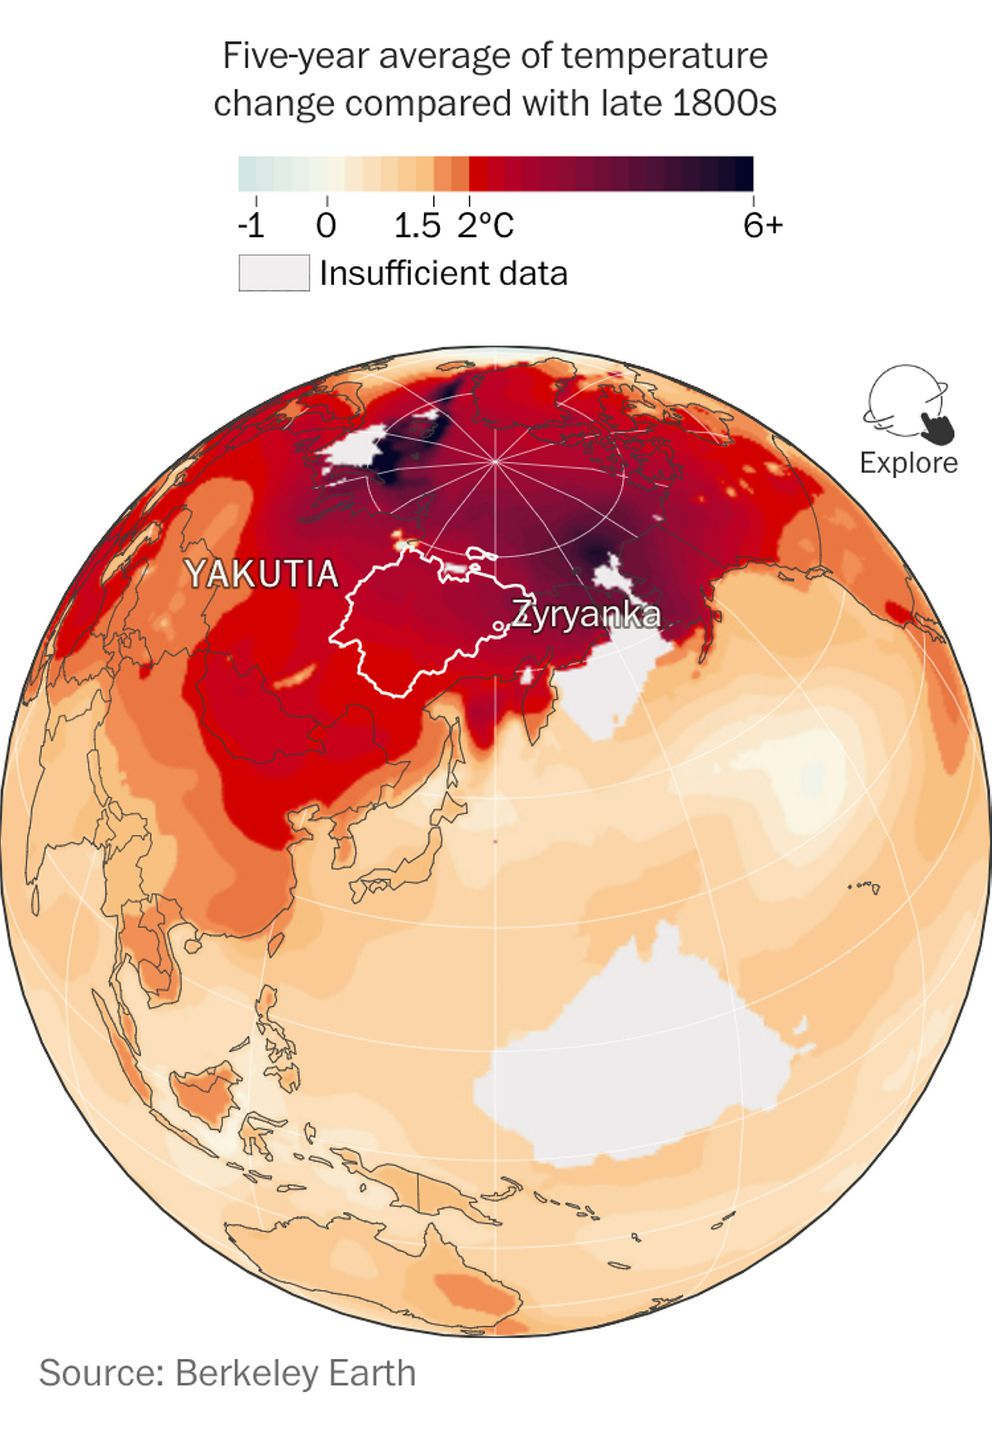 Five-year average of temperature change compared with the late 1800s. (Berkeley Earth)